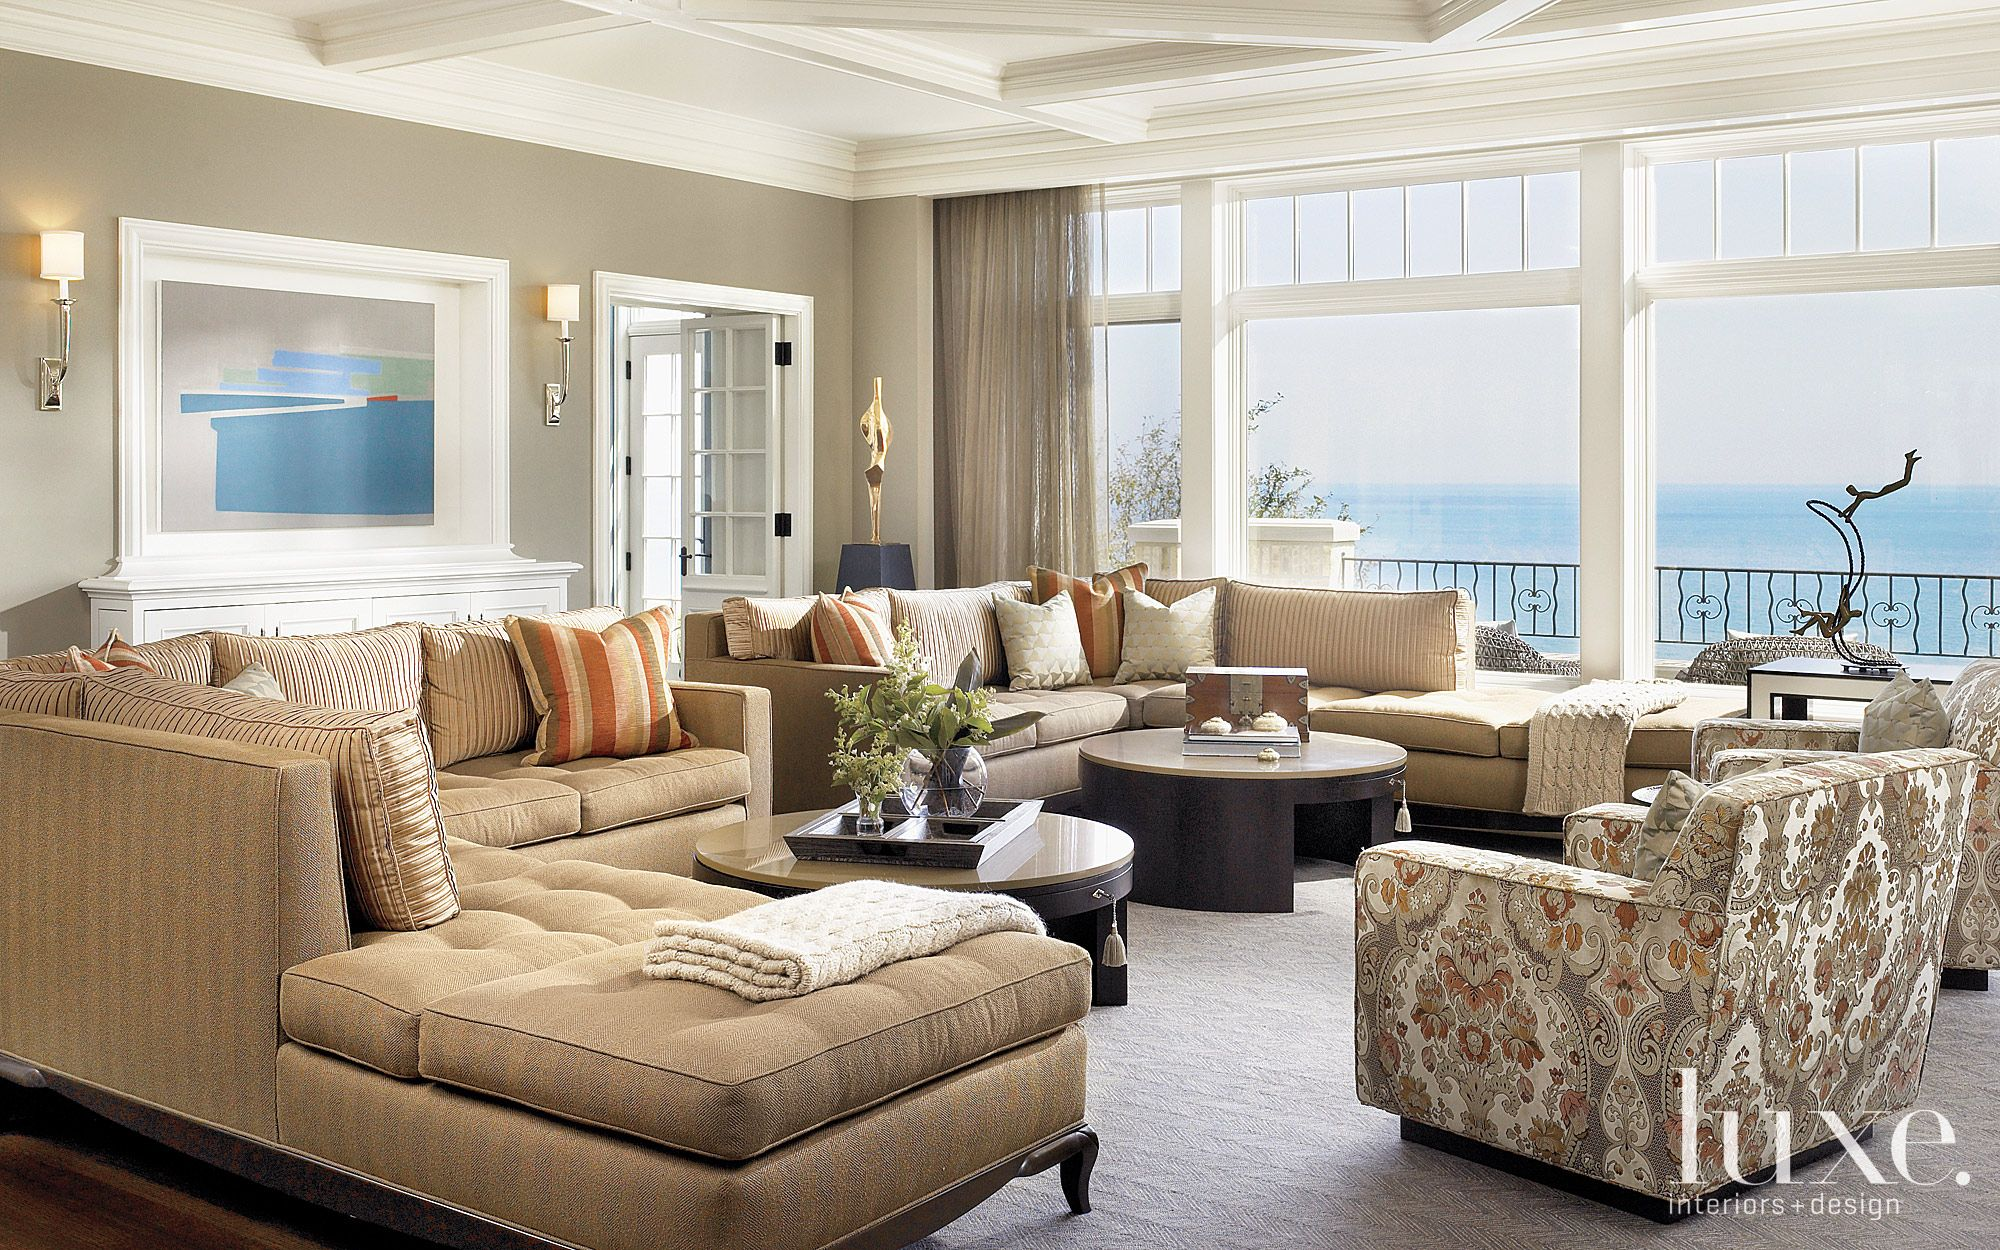 Contemporary Cream Living Room with Lake Views